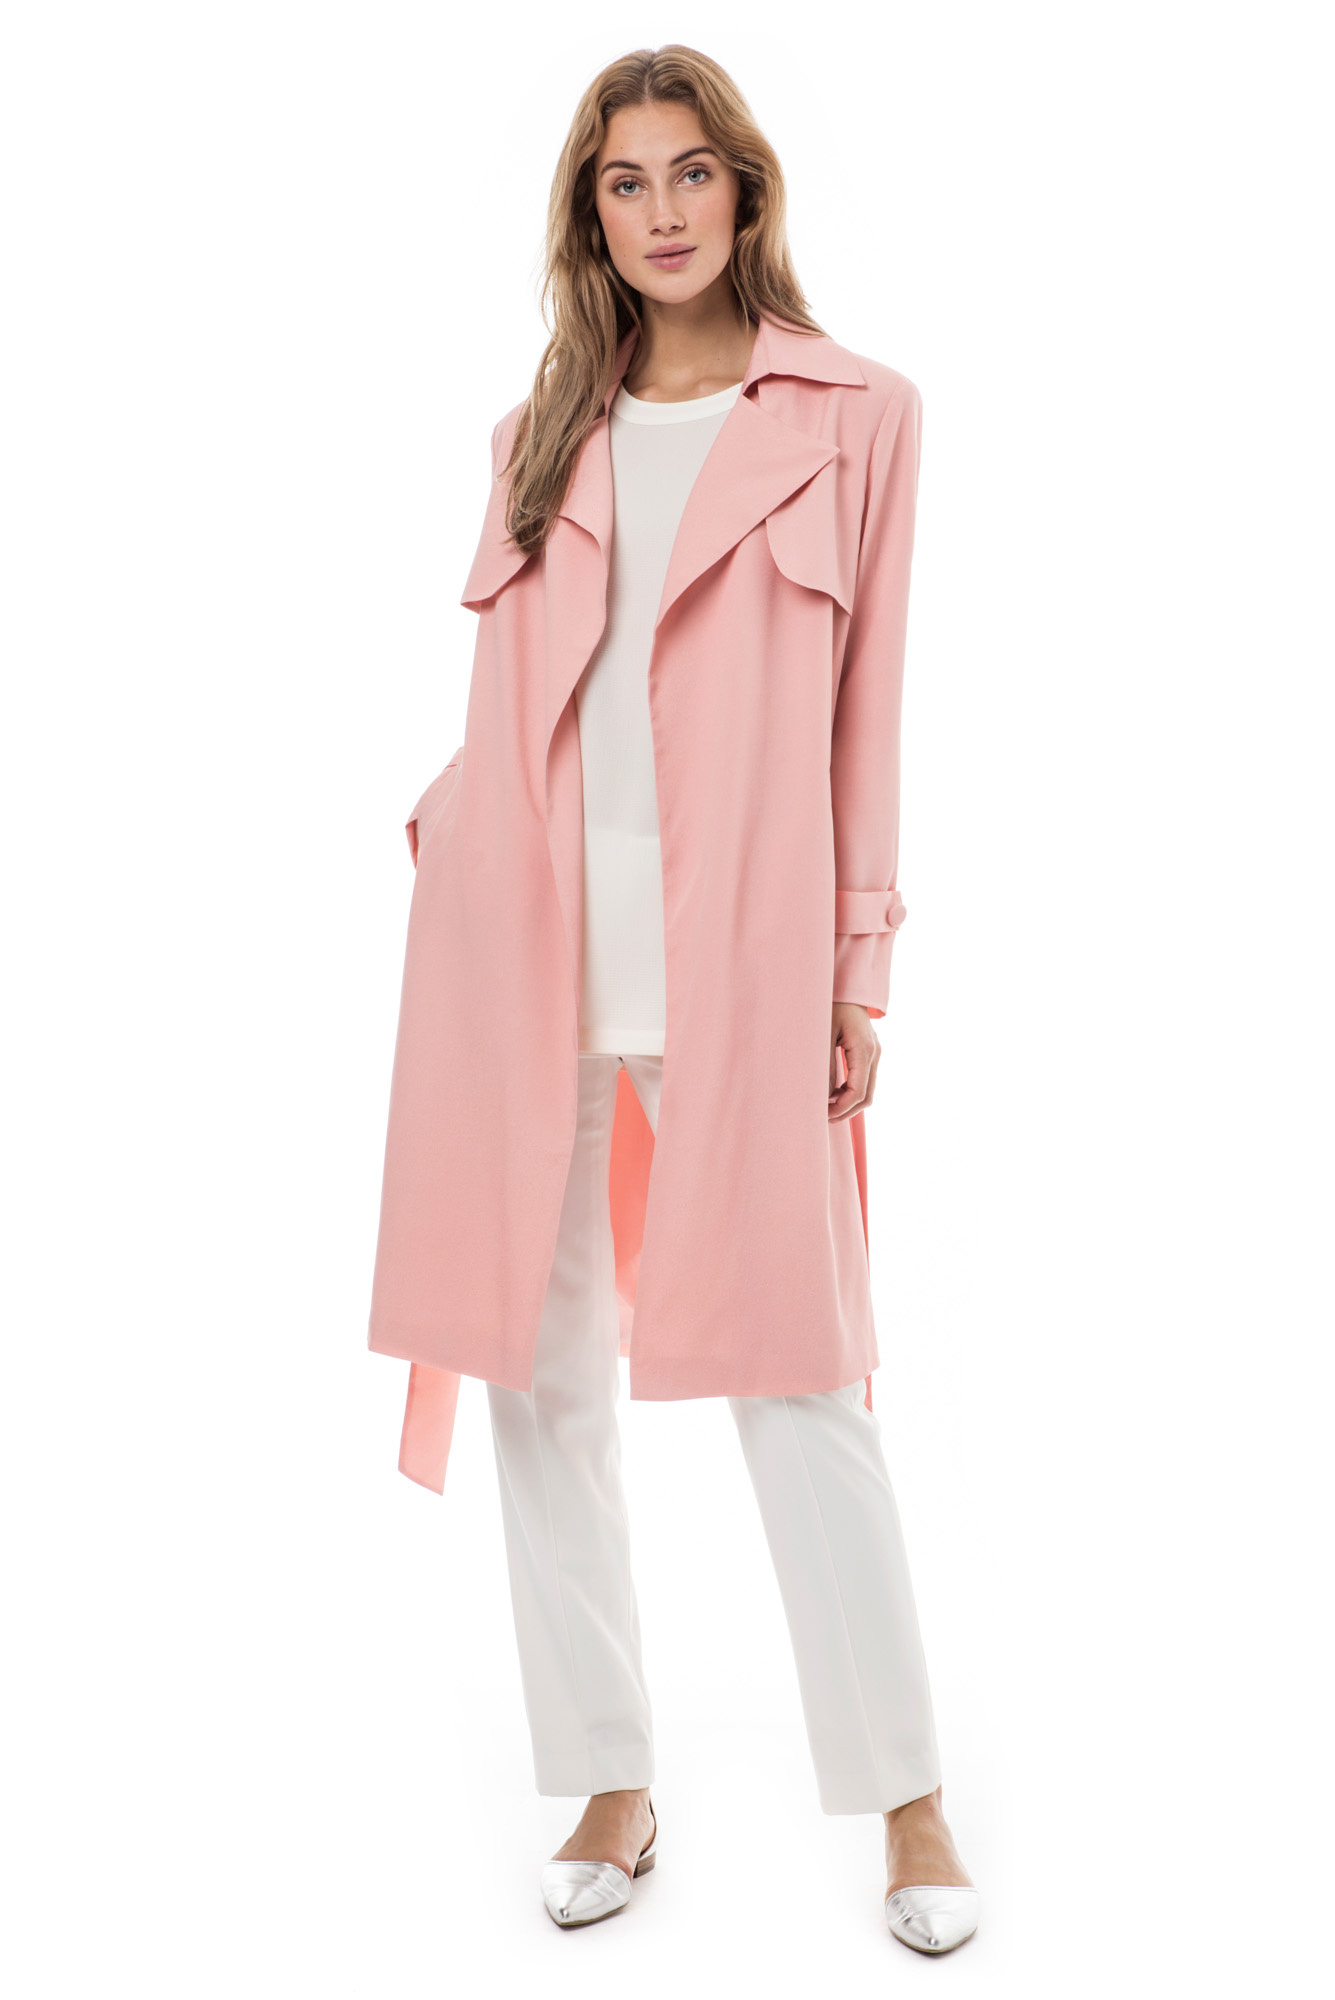 315_85e989ef19-zina-trench-pink-1-by-malina-big.jpg